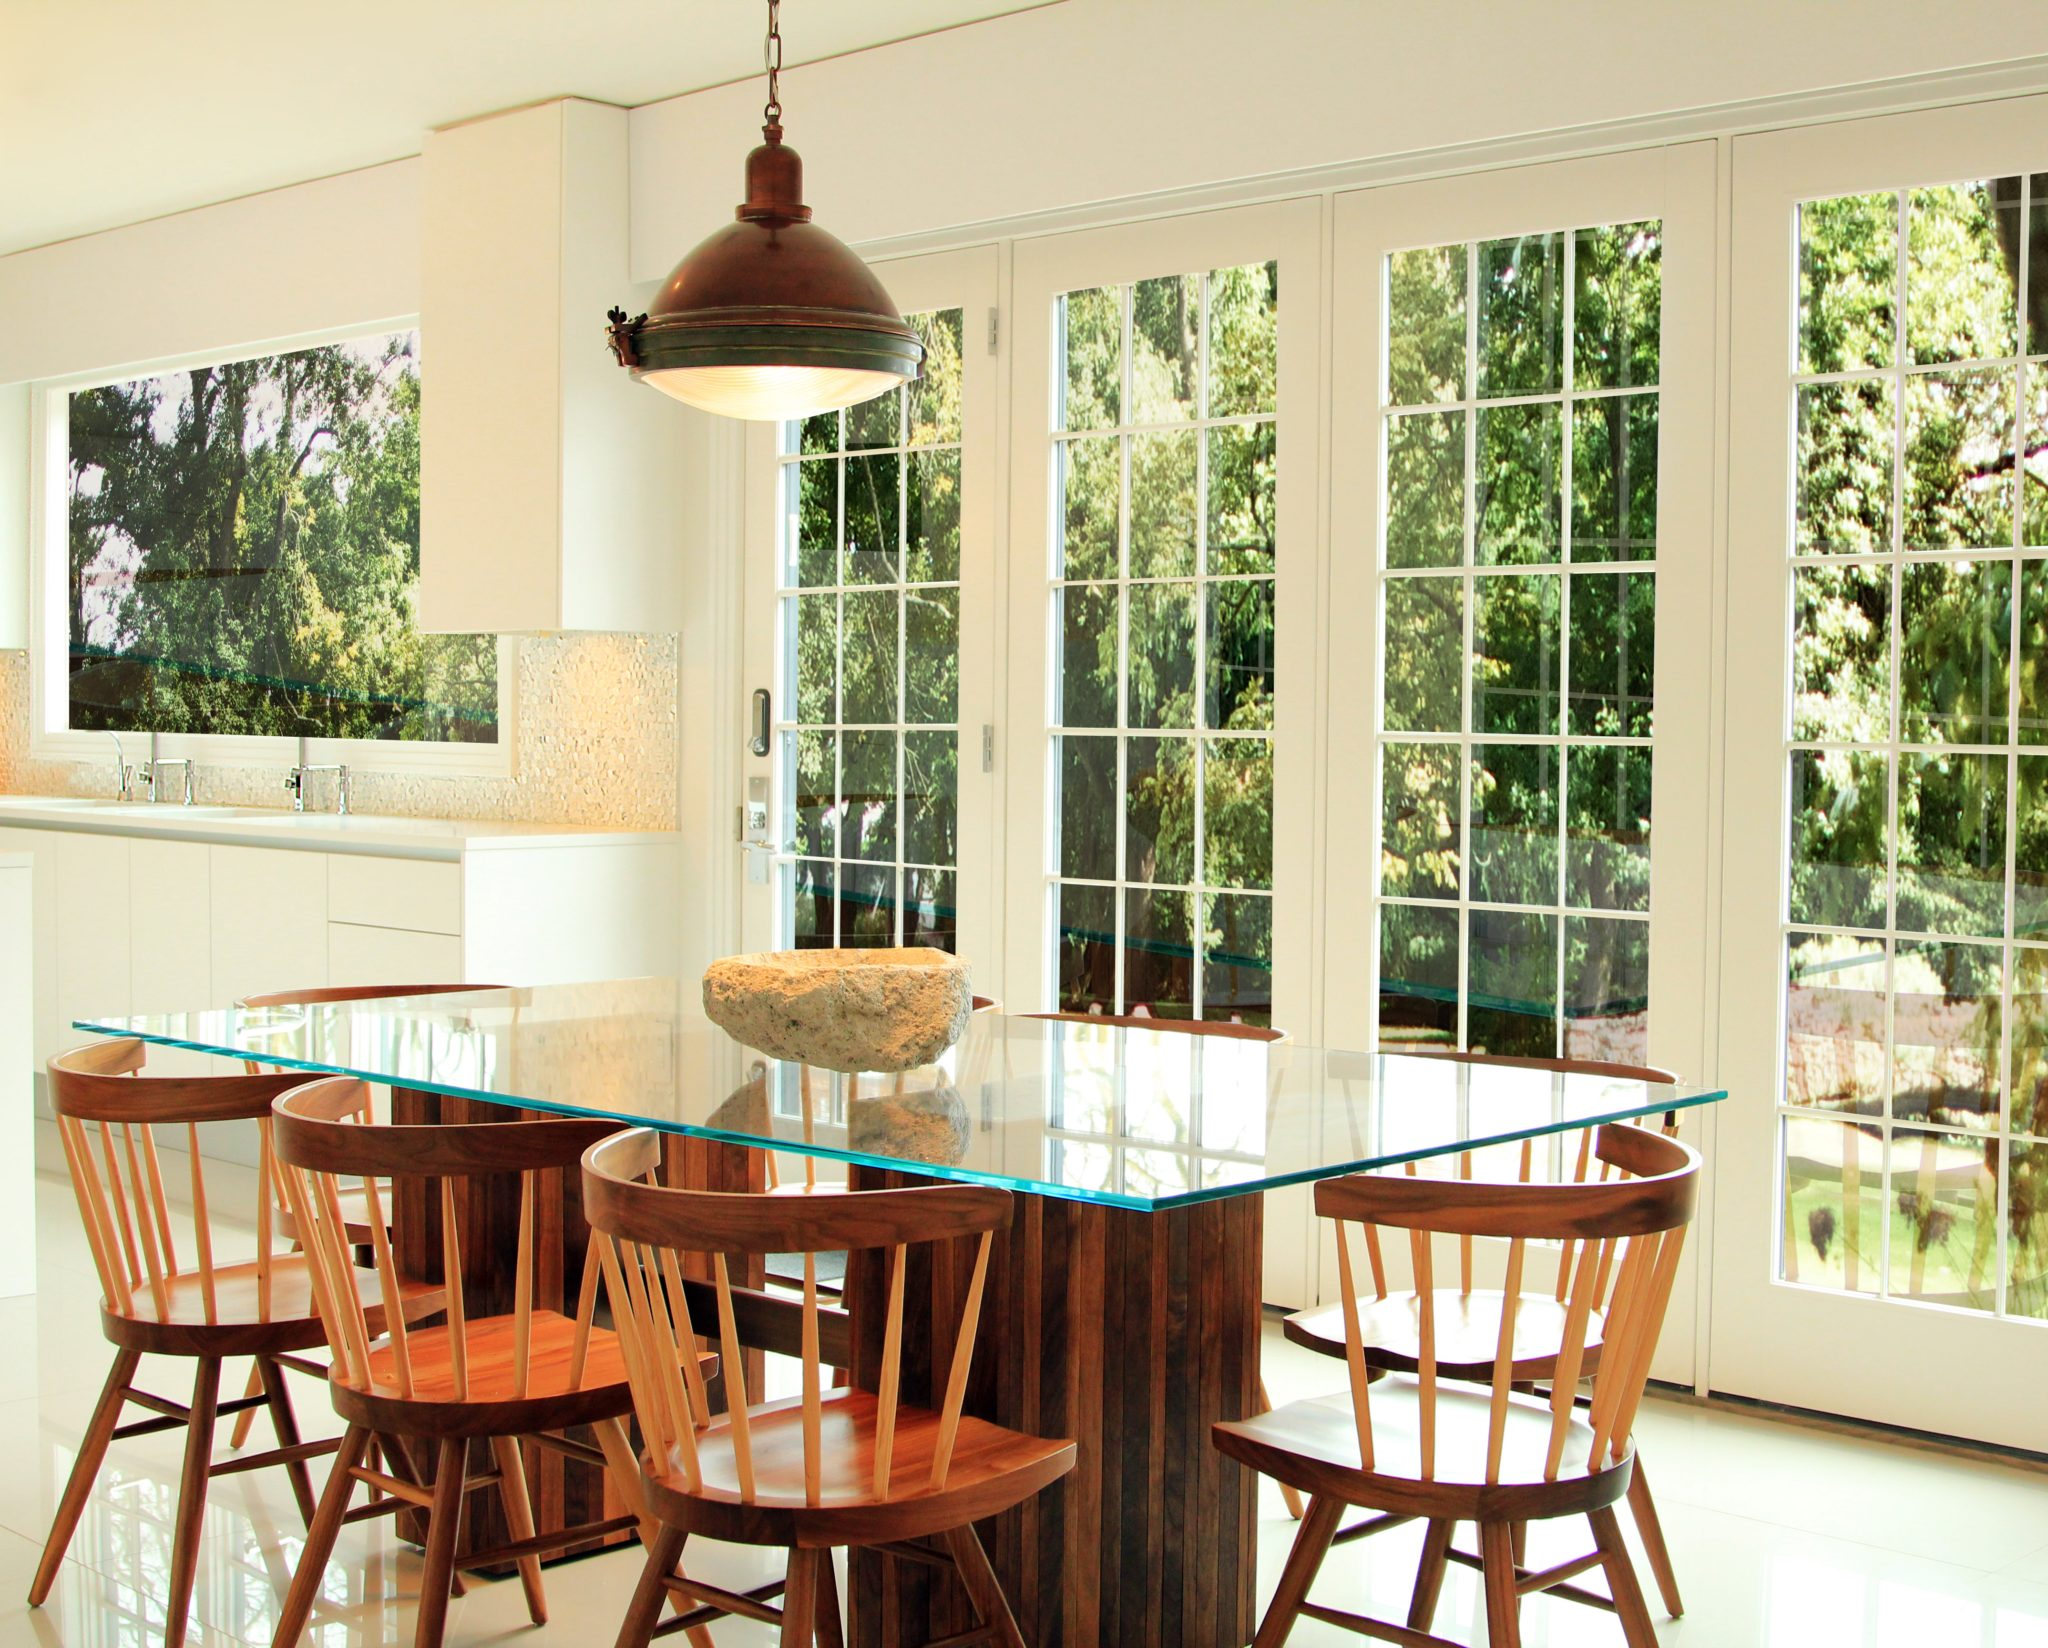 New Jersey Shore Beach House Breakfast Nook with Industrial Pendant Light by DiMare Design